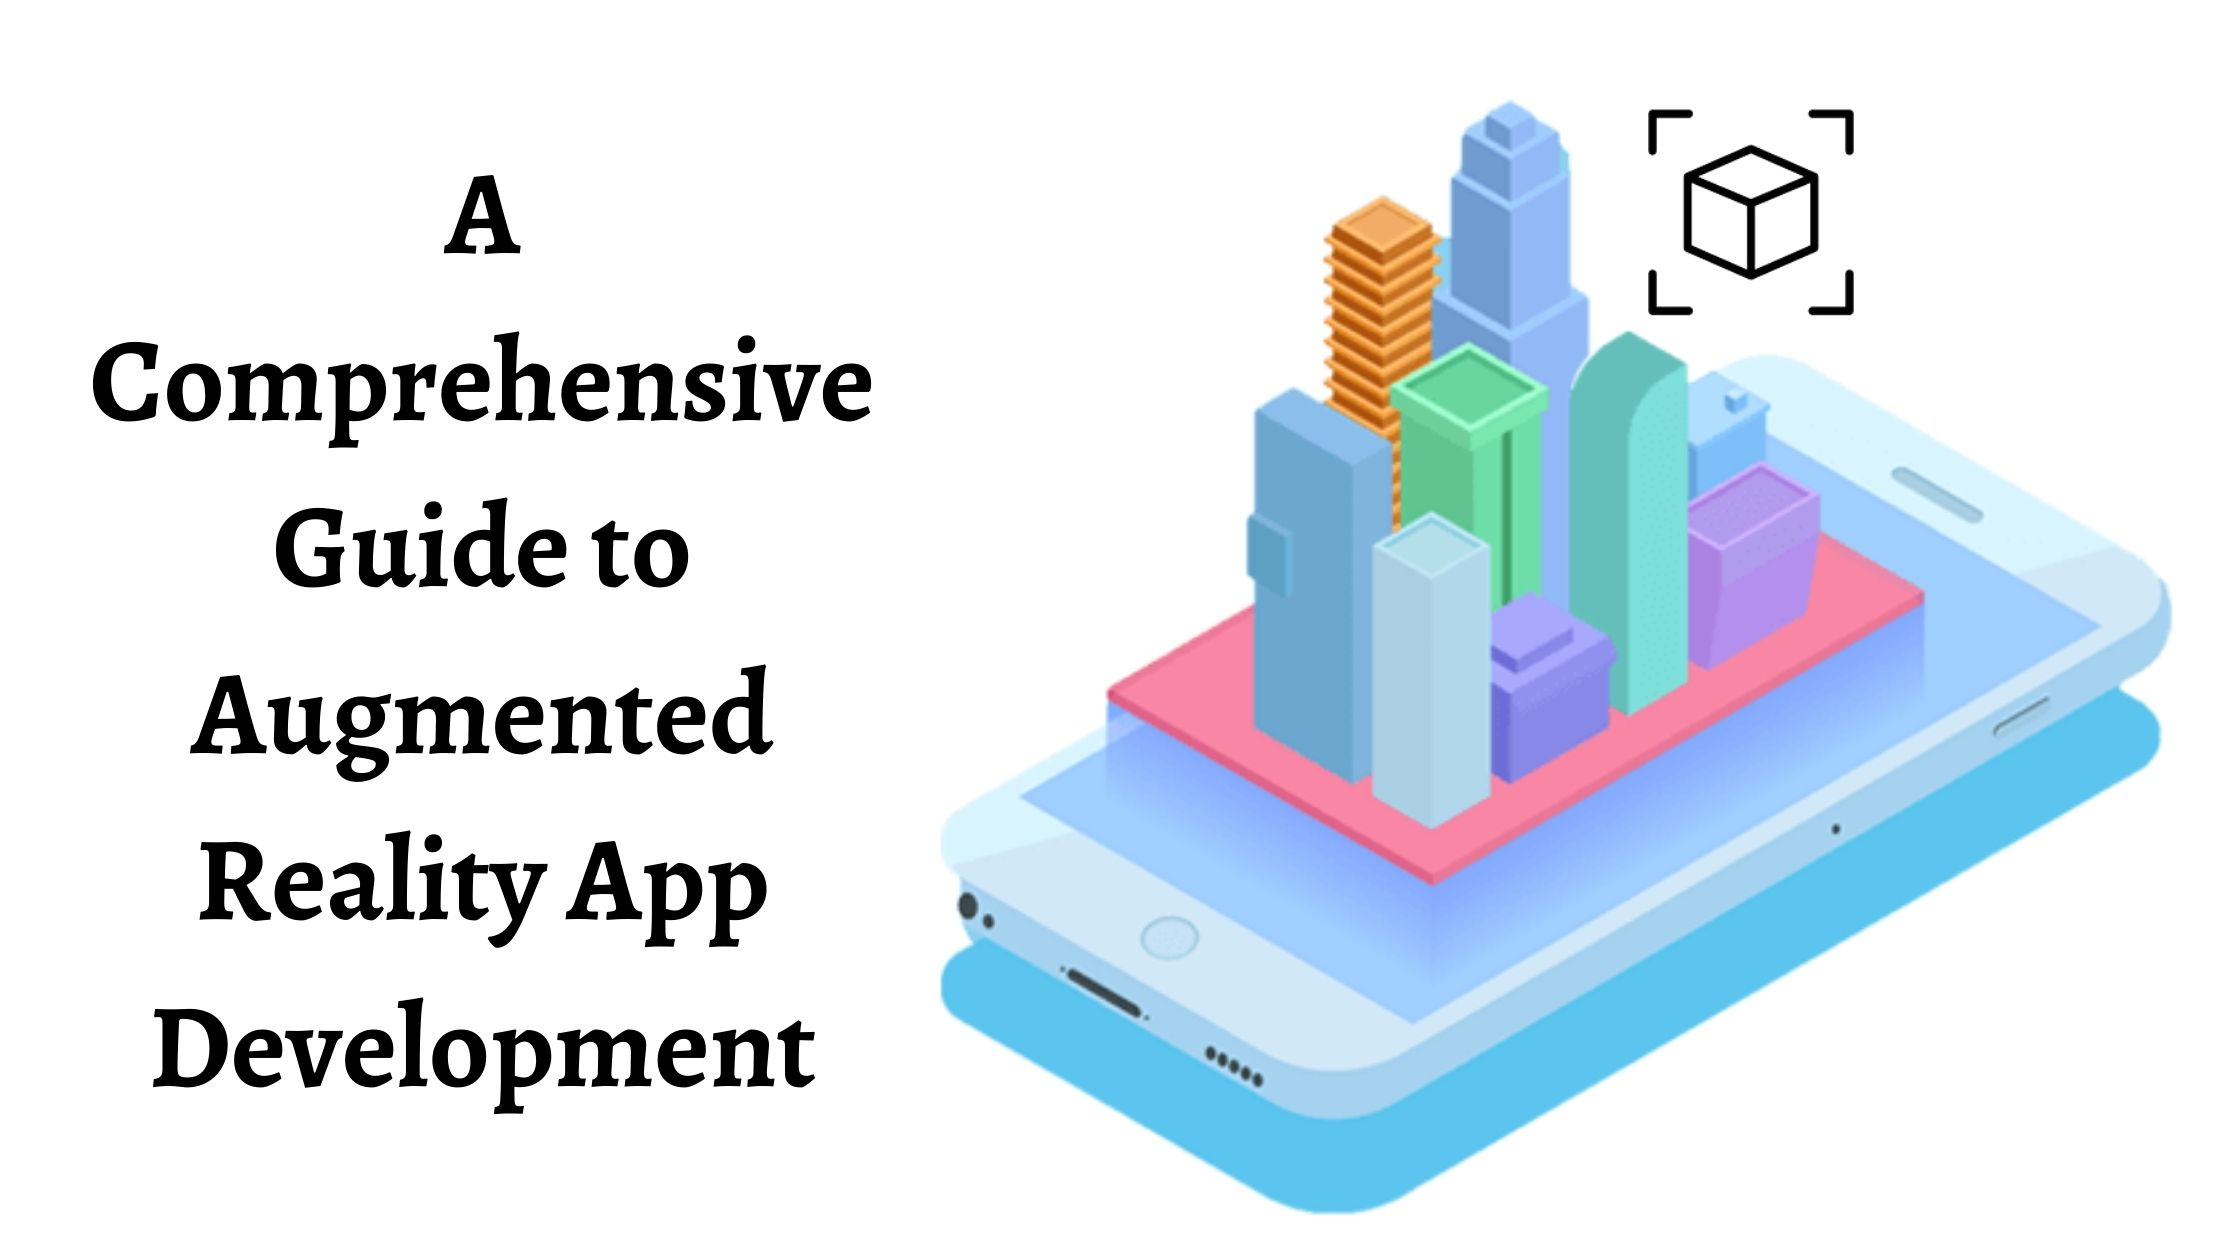 A Comprehensive Guide to Augmented Reality App Development